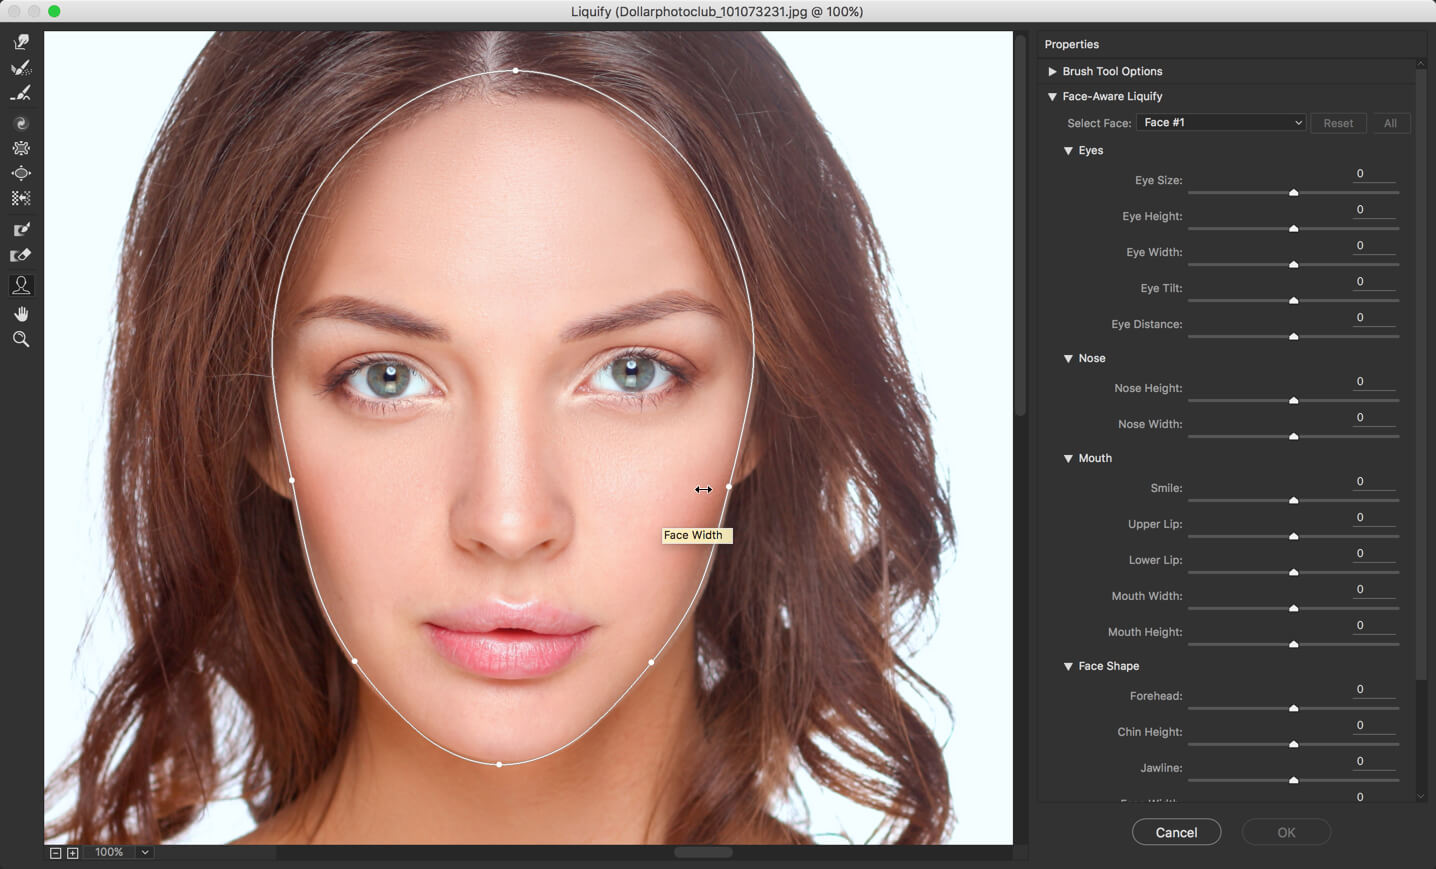 2 - Face Liquify Tool in Photoshop- Change that Face Structure